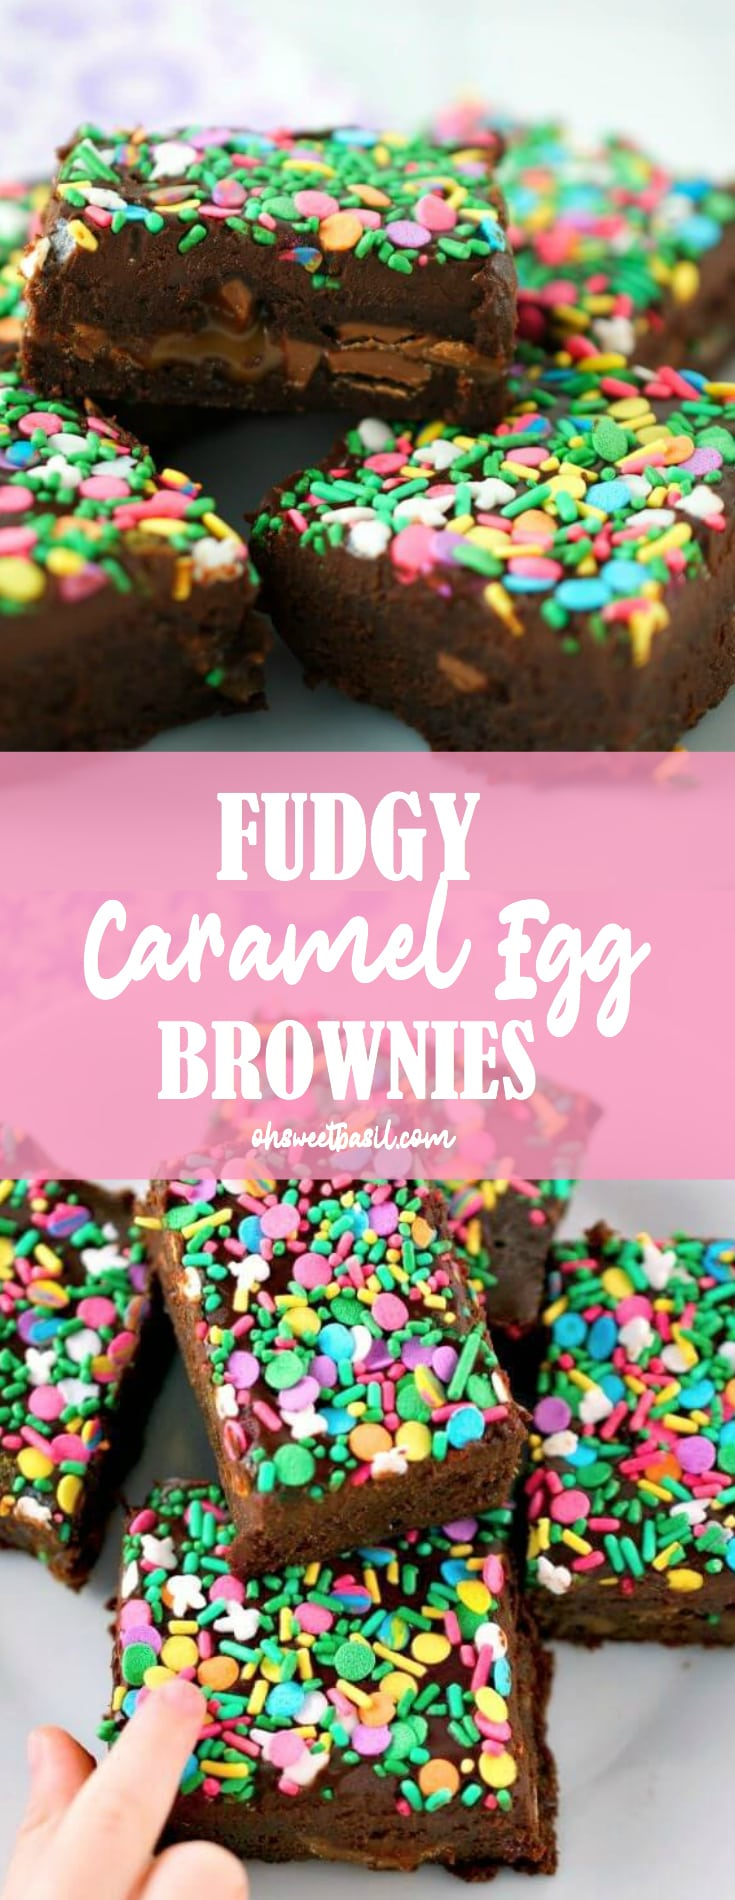 Fudgy Caramel Egg Brownies loaded with caramel filled eggs and topped with dark chocolate ganache.